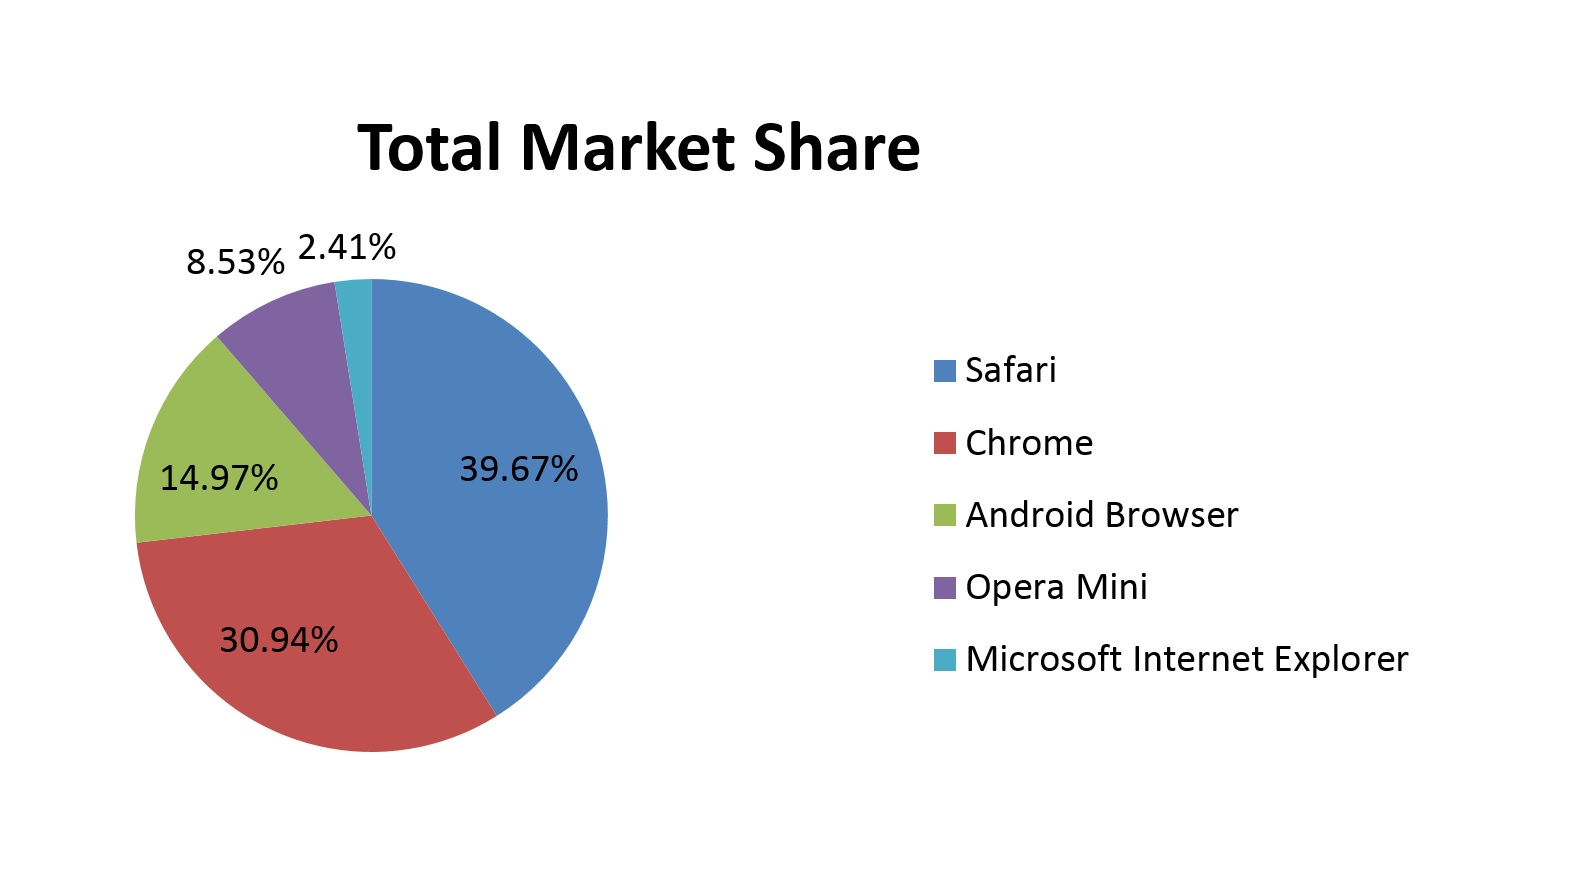 Mobile and Tablet Browser Market Share